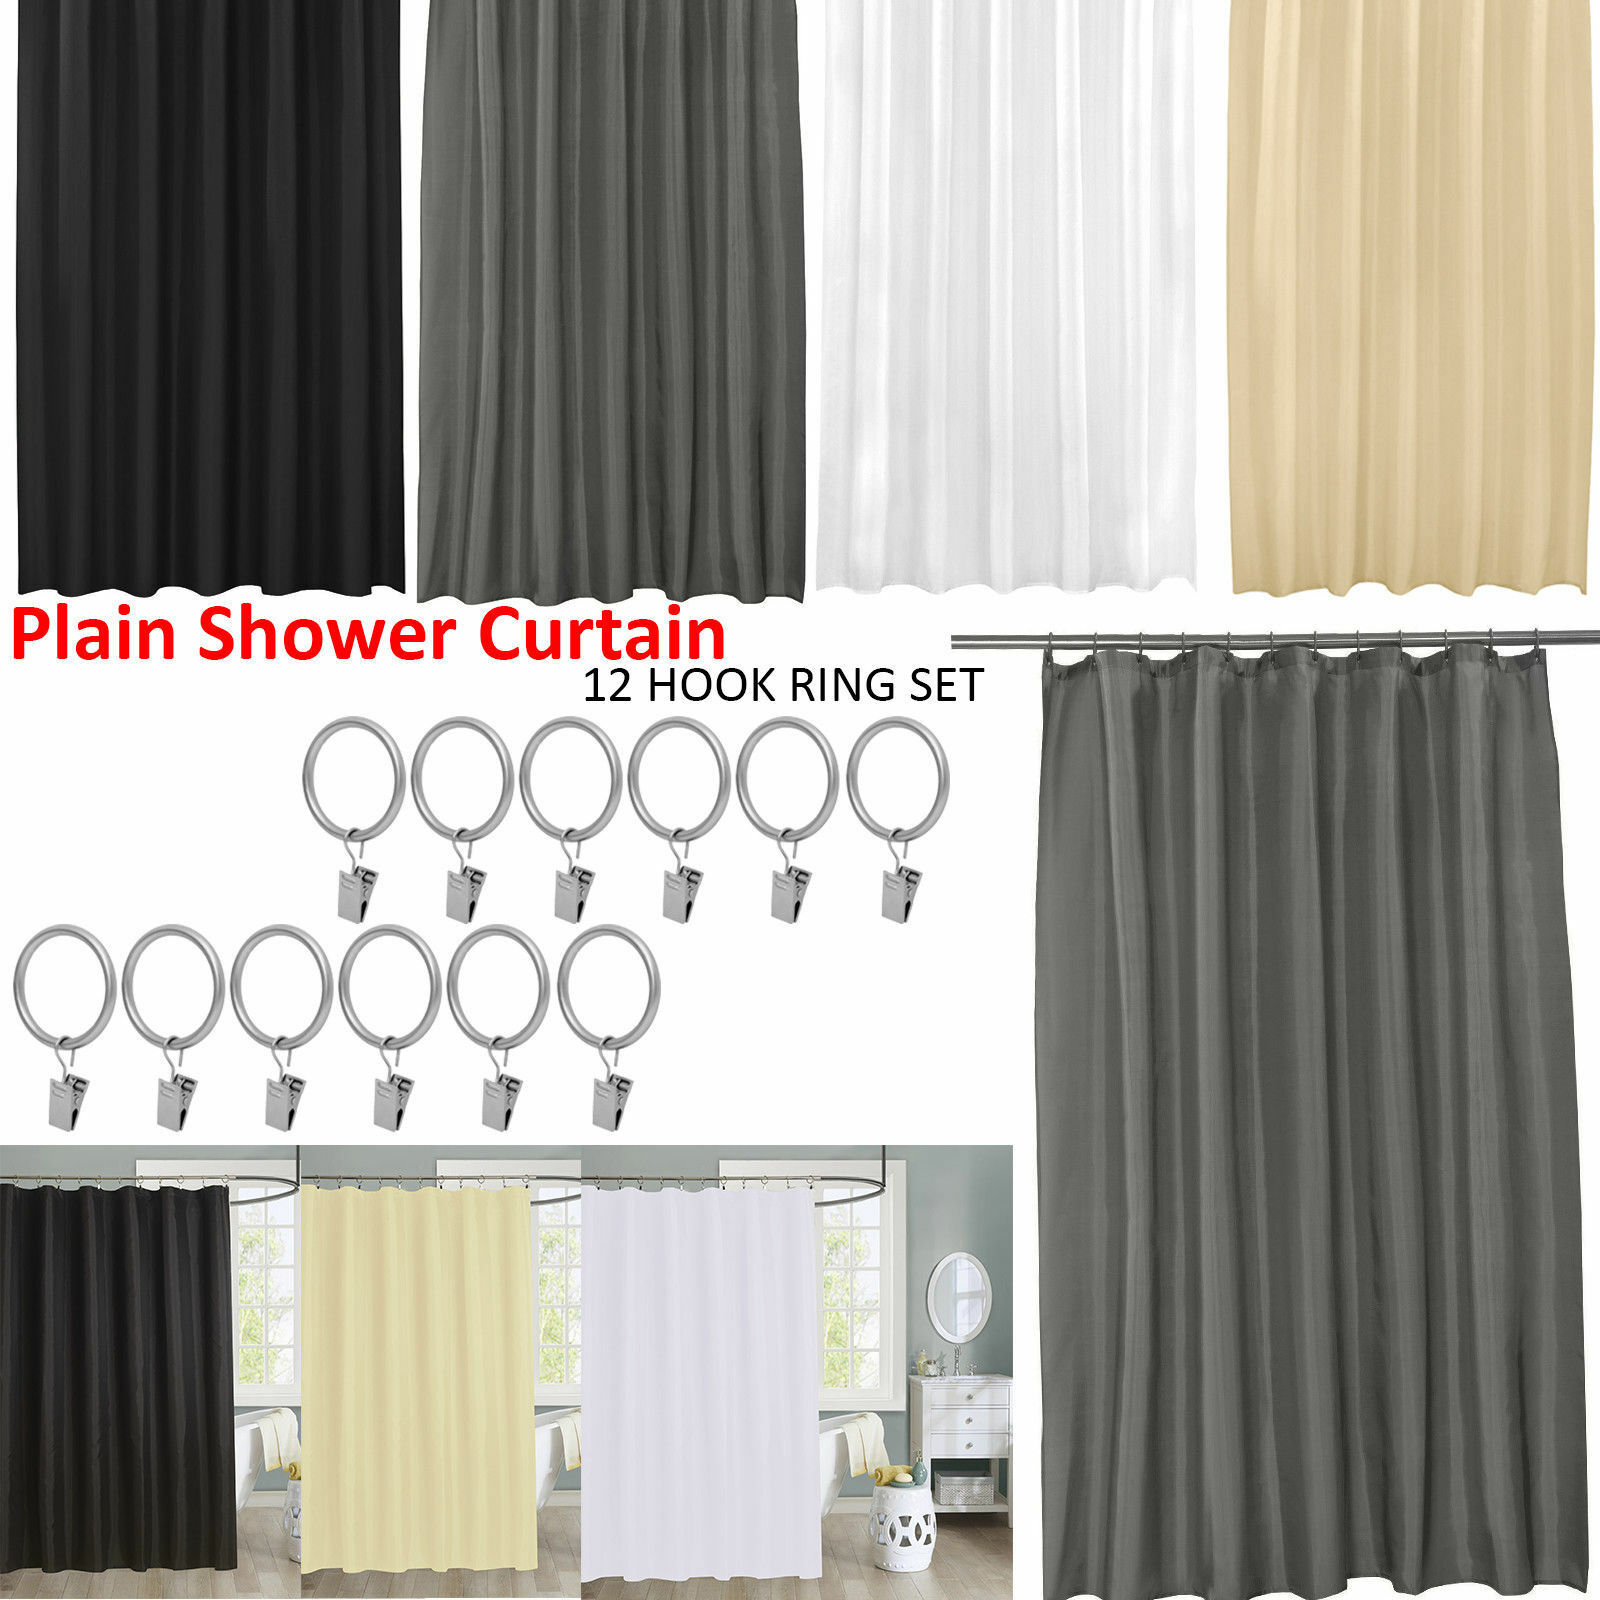 Details About Waterproof Bathroom Shower Curtain Extra Long 12 Hooks Ring Set 180x180cmk